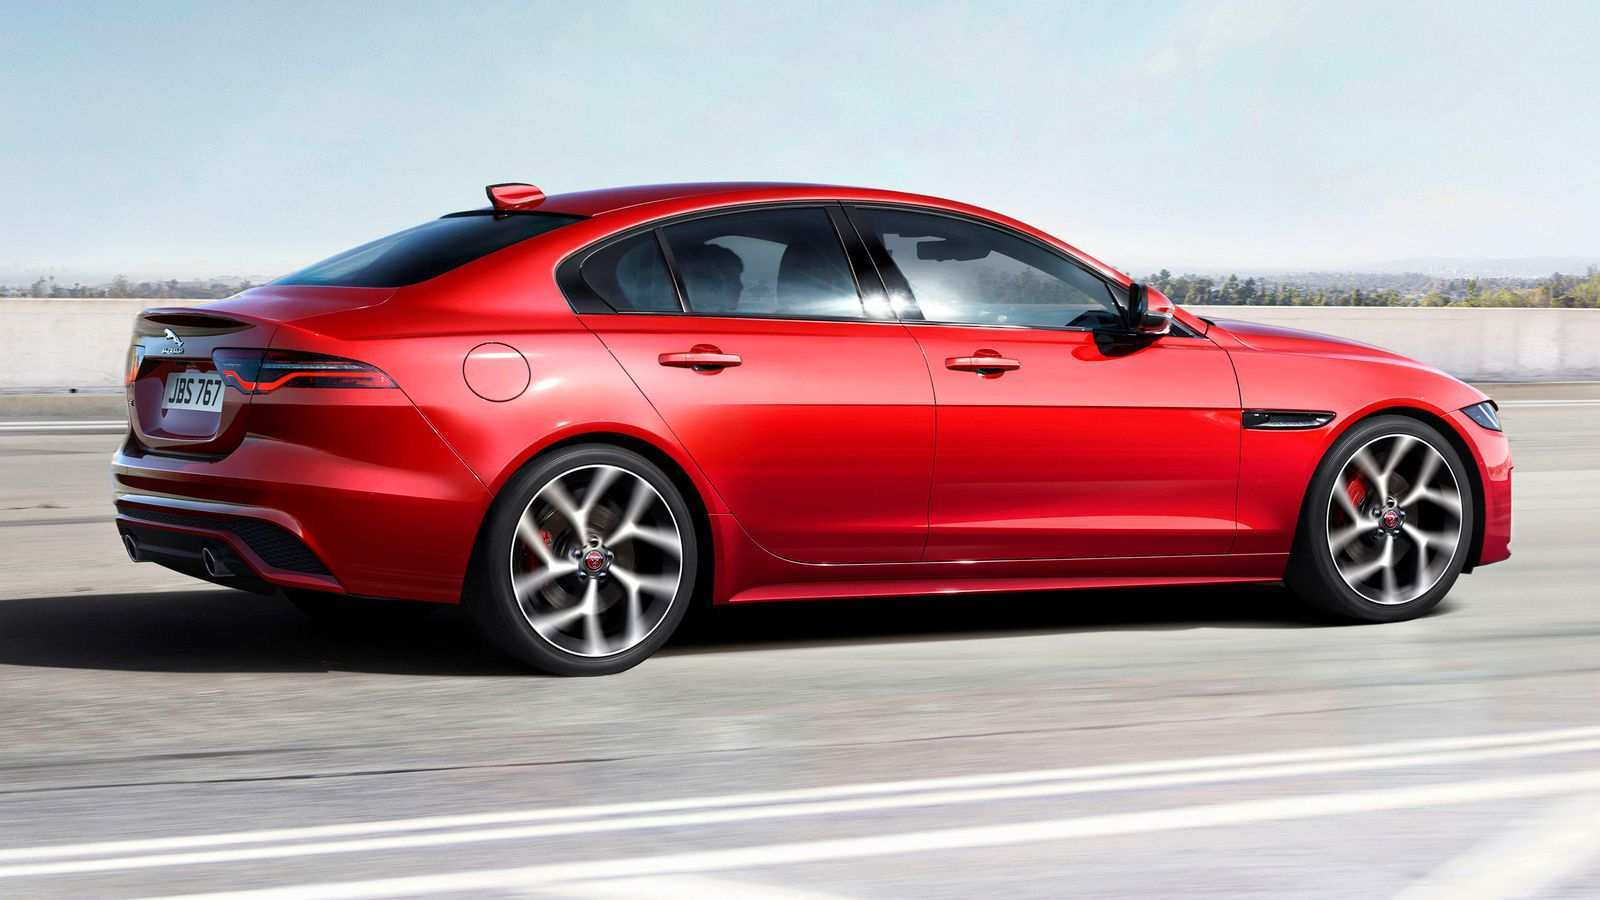 31 The Best 2020 Jaguar Xe Sedan Configurations